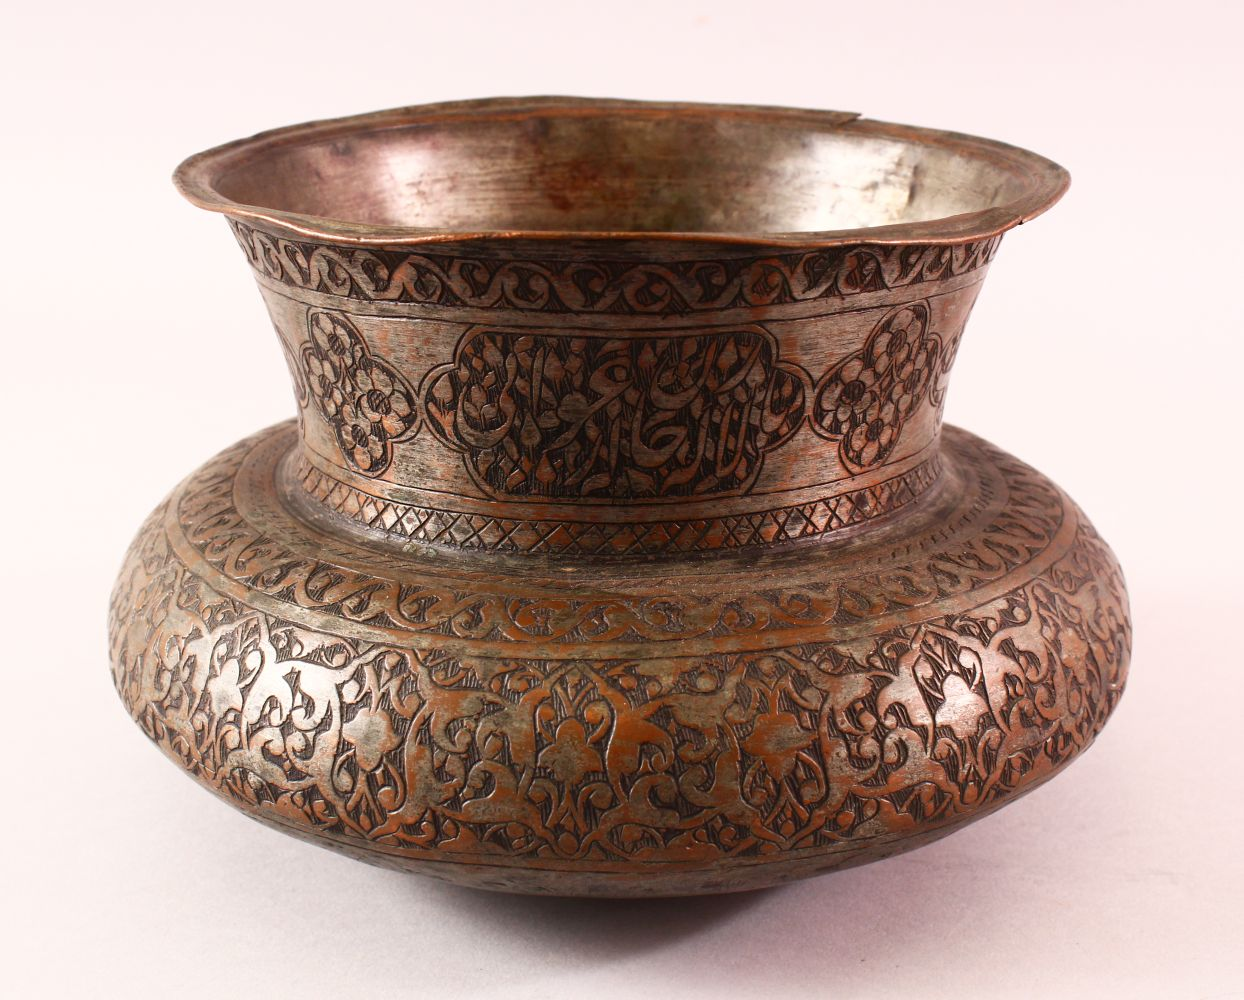 A 17TH CENTURY PERSIAN CALLIGRAPHIC BOWL -SIGNED - the body with carved floral motif decoration, the